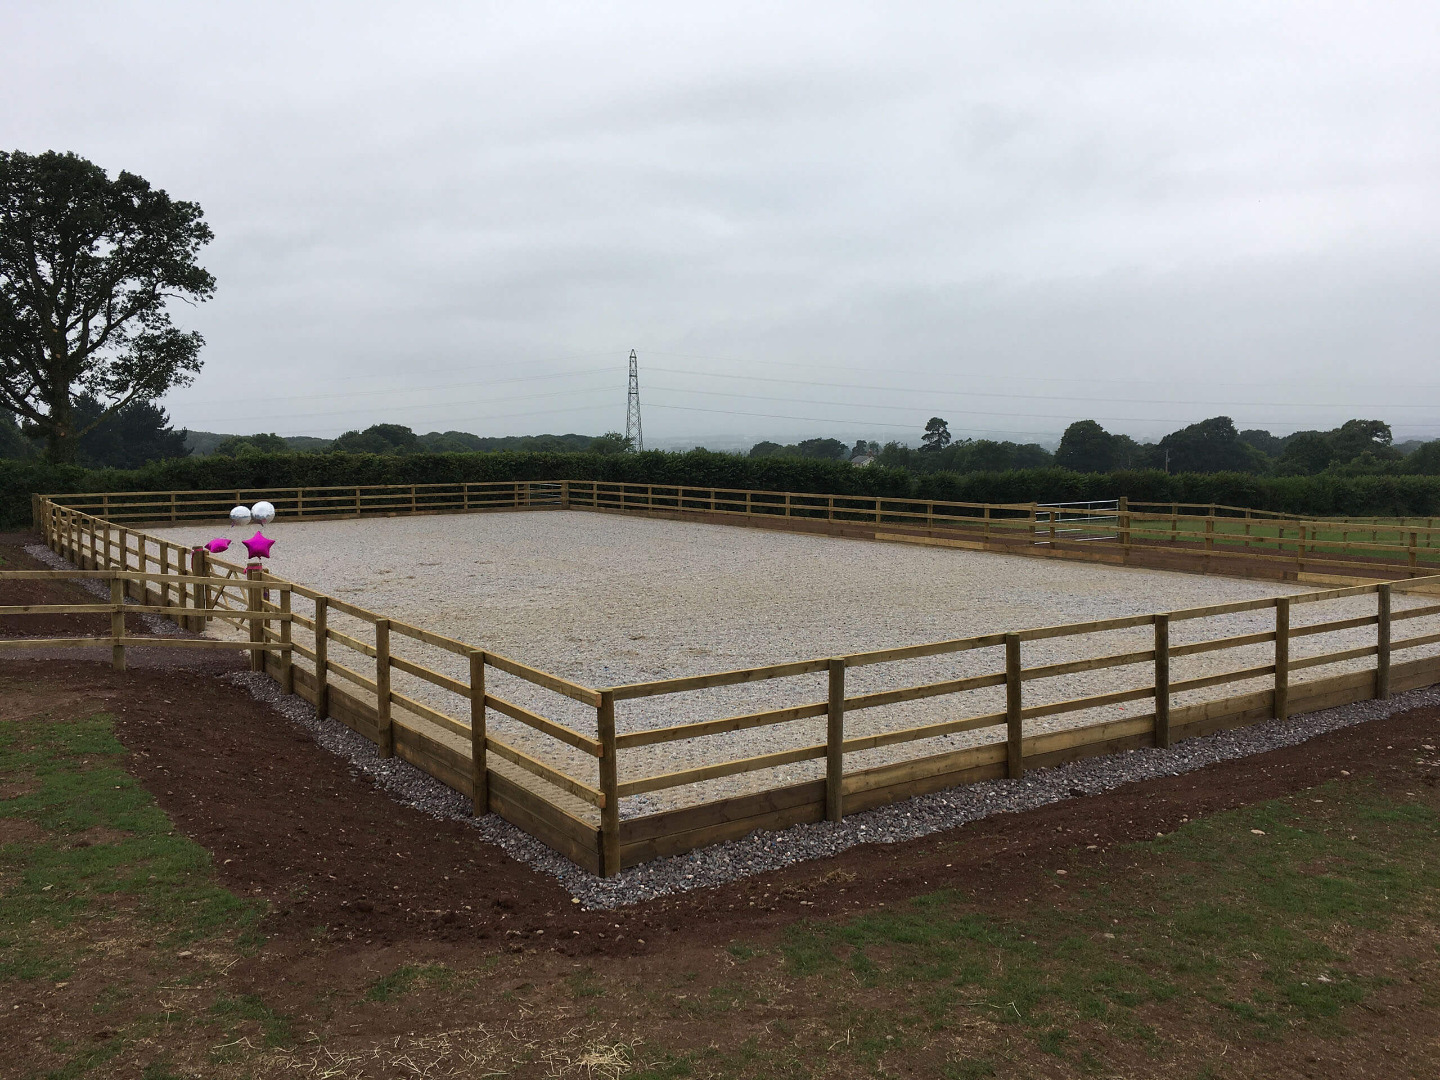 20m x 40m riding arena constructed near Exeter Devon